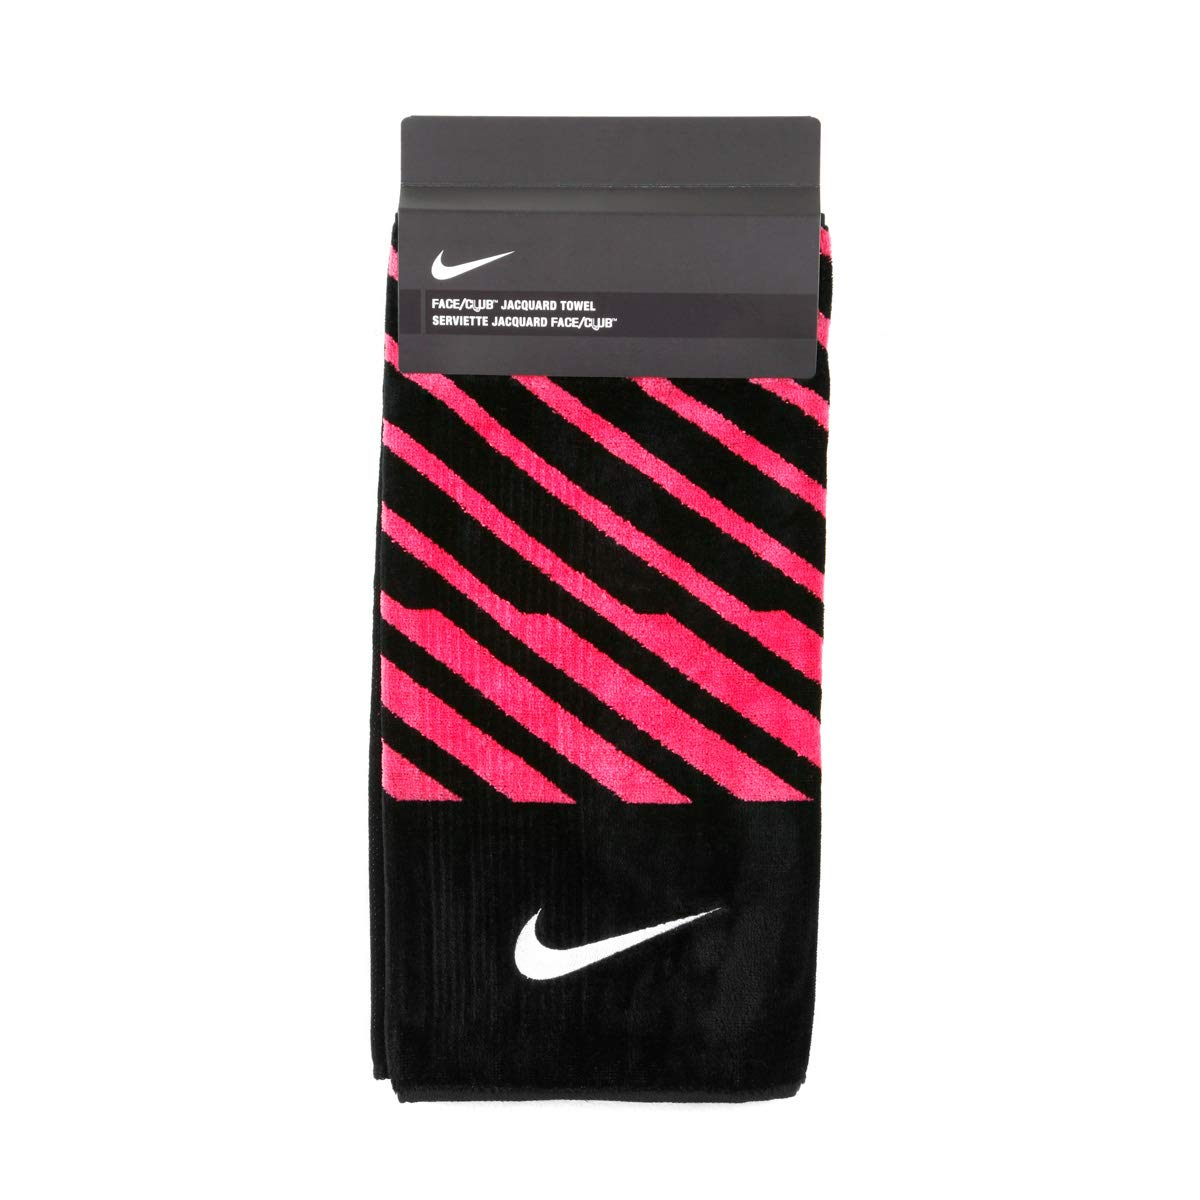 Nike Closeout Face/Club Jacquard Towel - Black/Pink by Nike